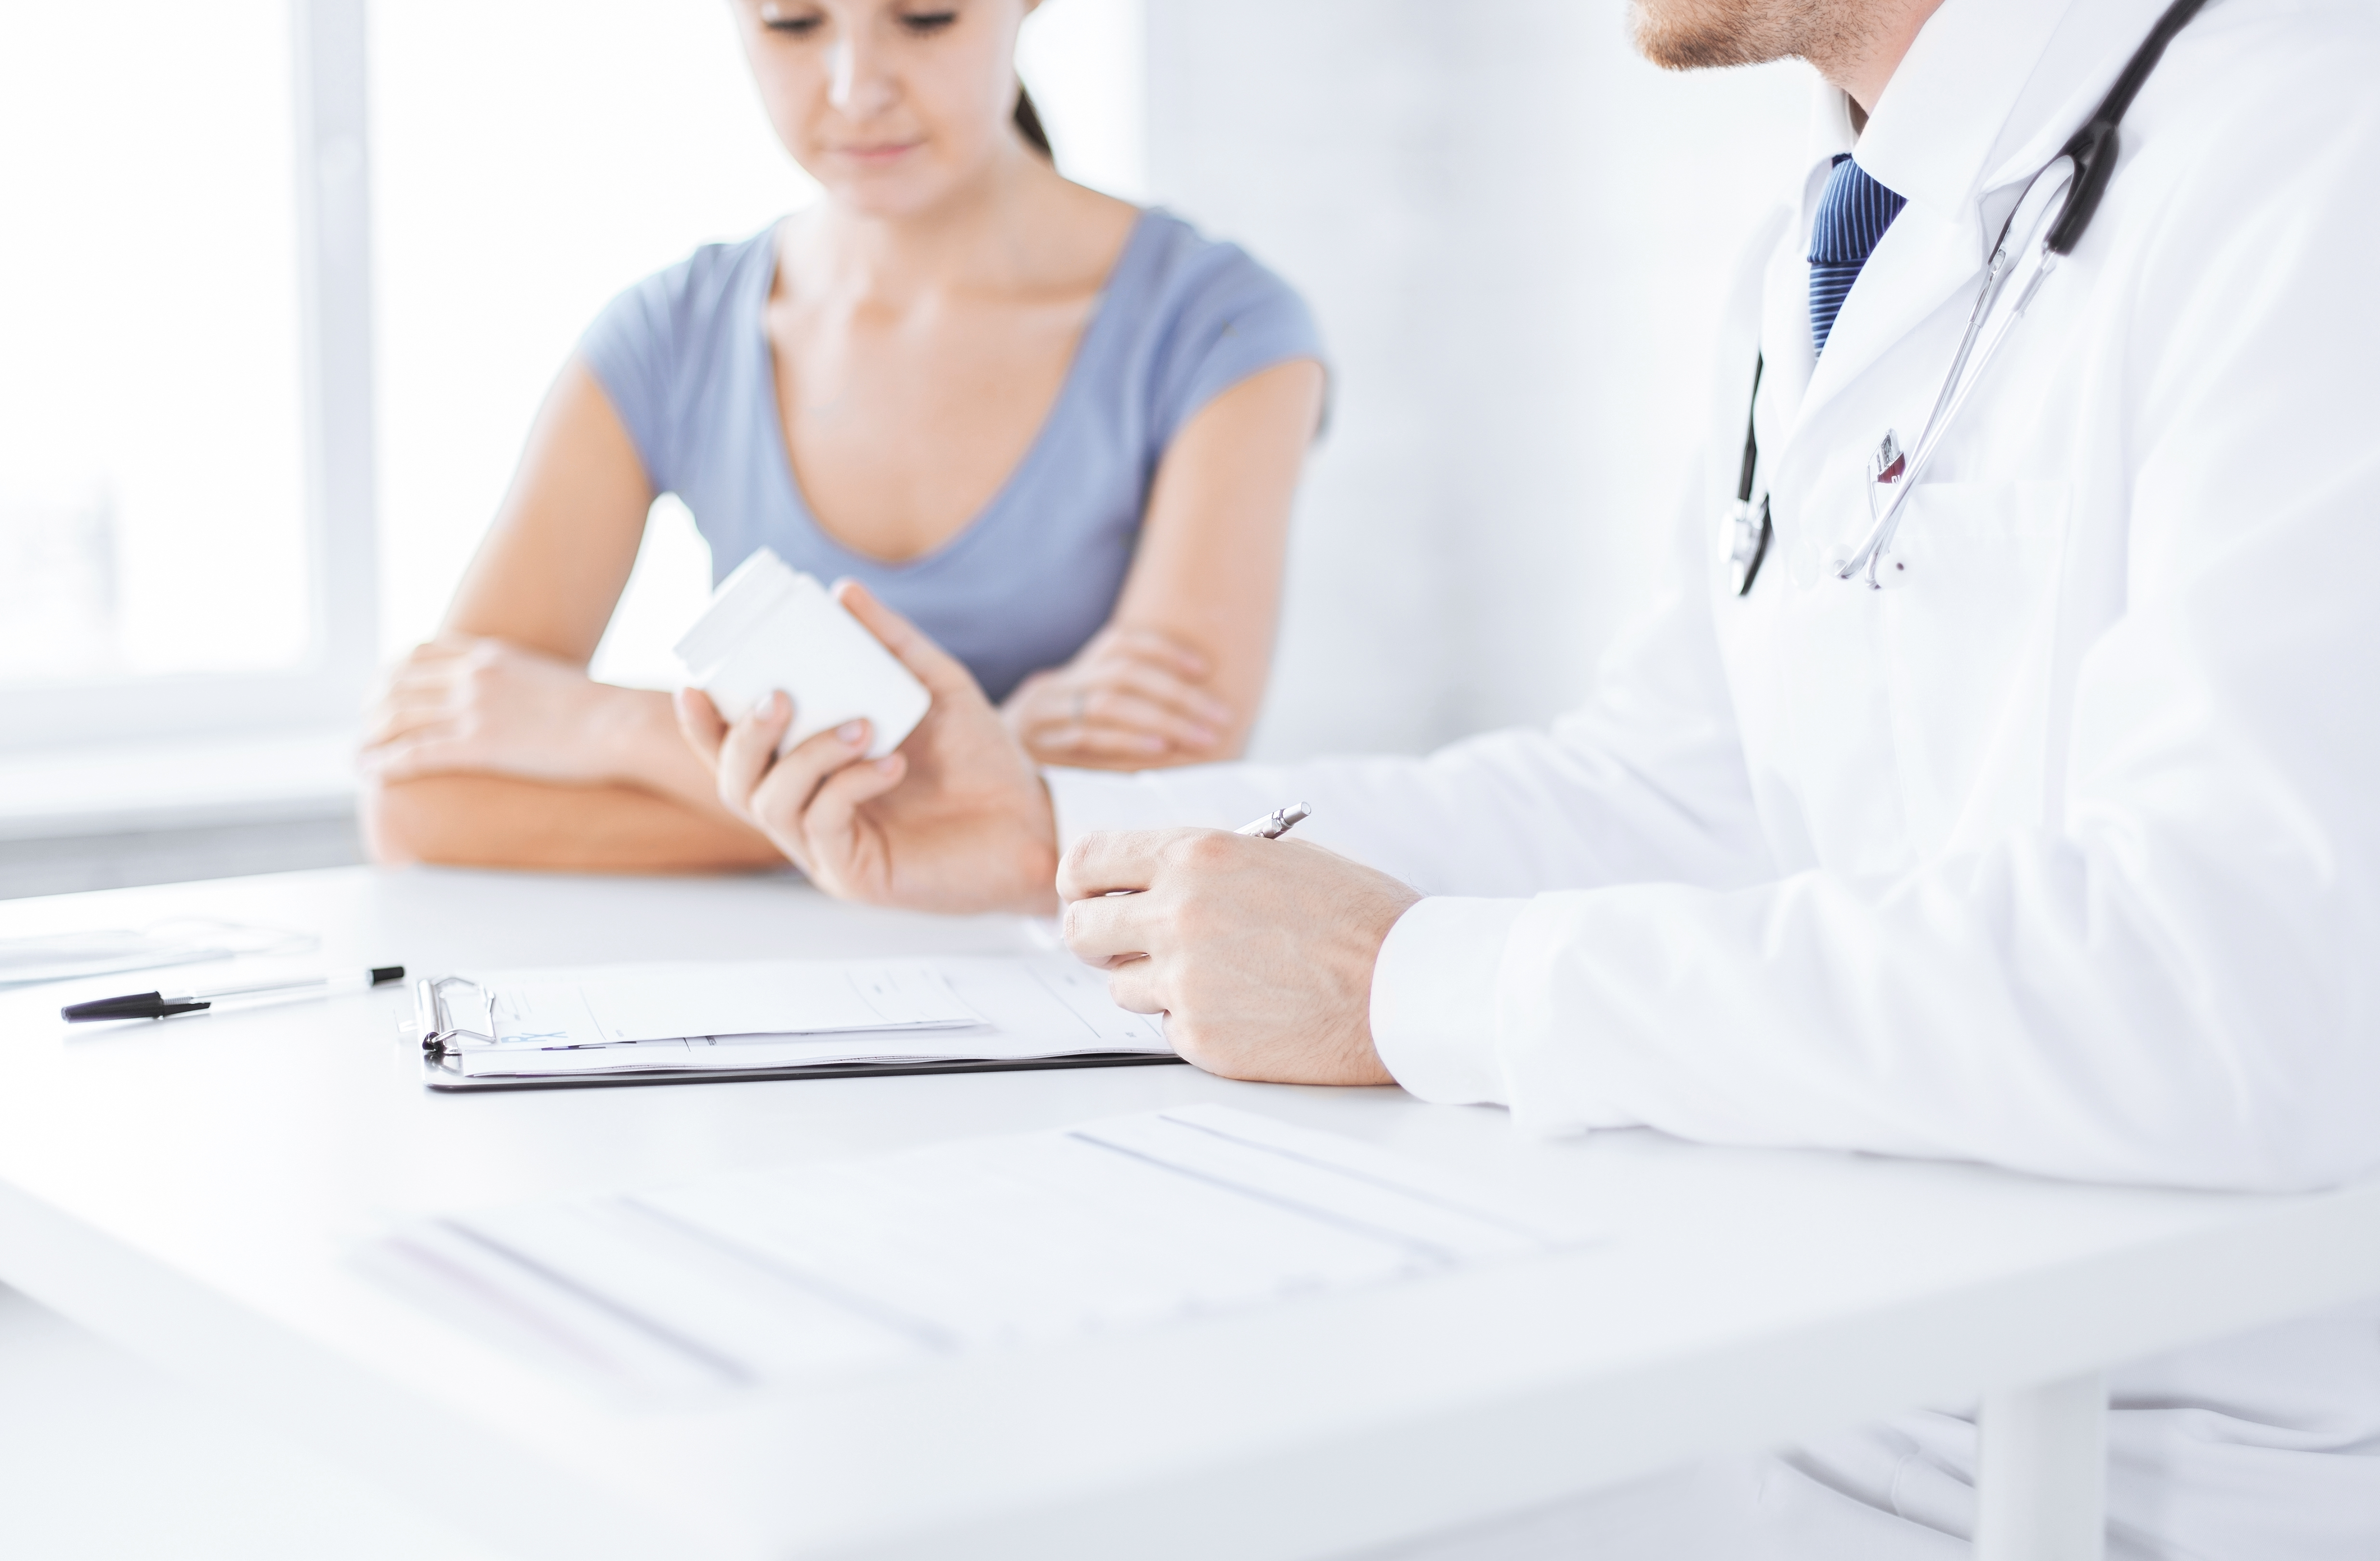 Gabapentin Has Therapeutic Benefits in Some Patients With Neuropathic Pain and Fibromyalgia